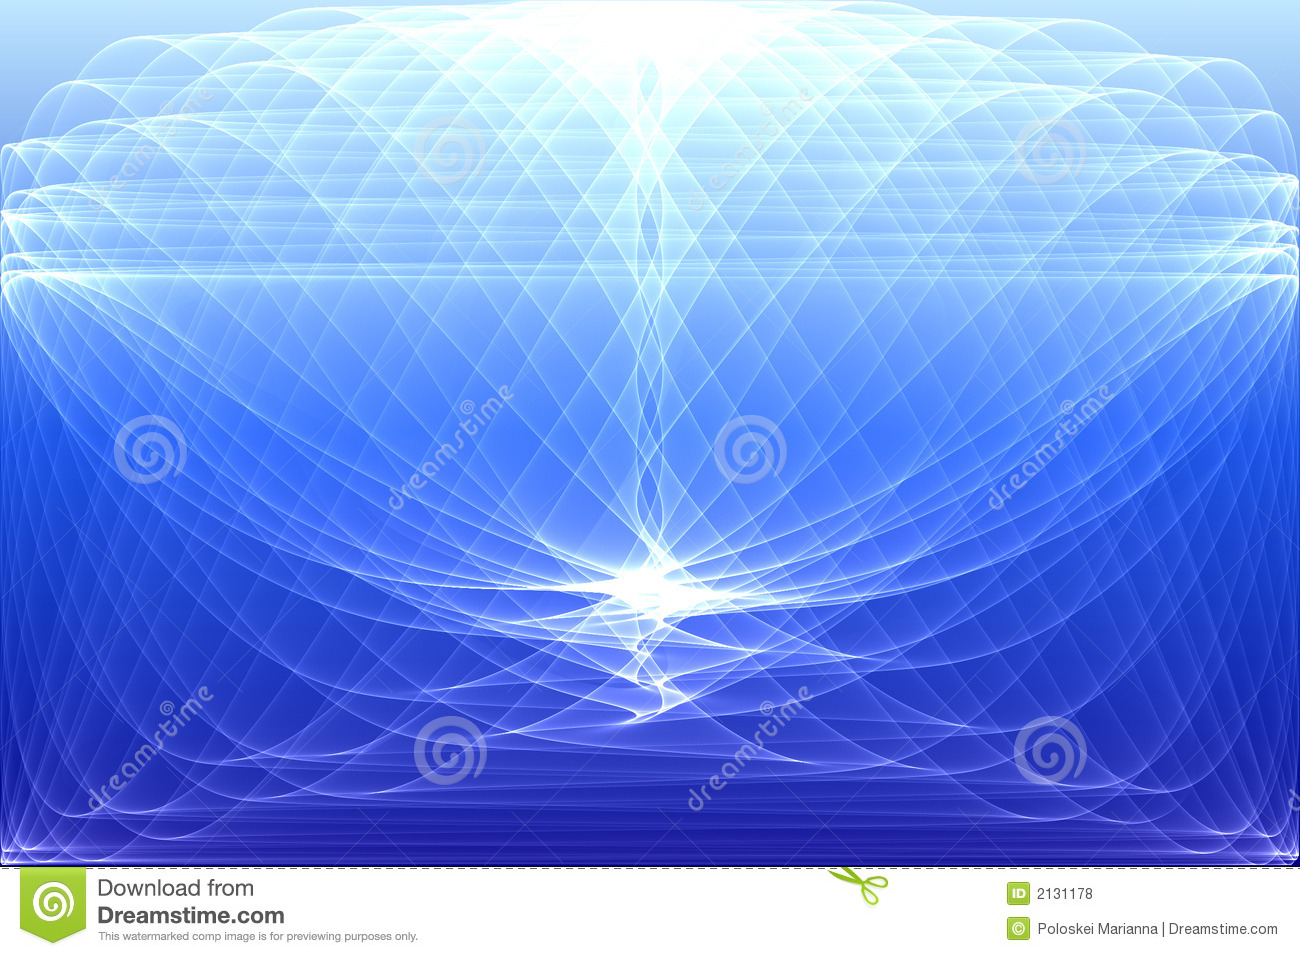 Abstract Digital Background Royalty Free Stock Photos - Image: 2131178